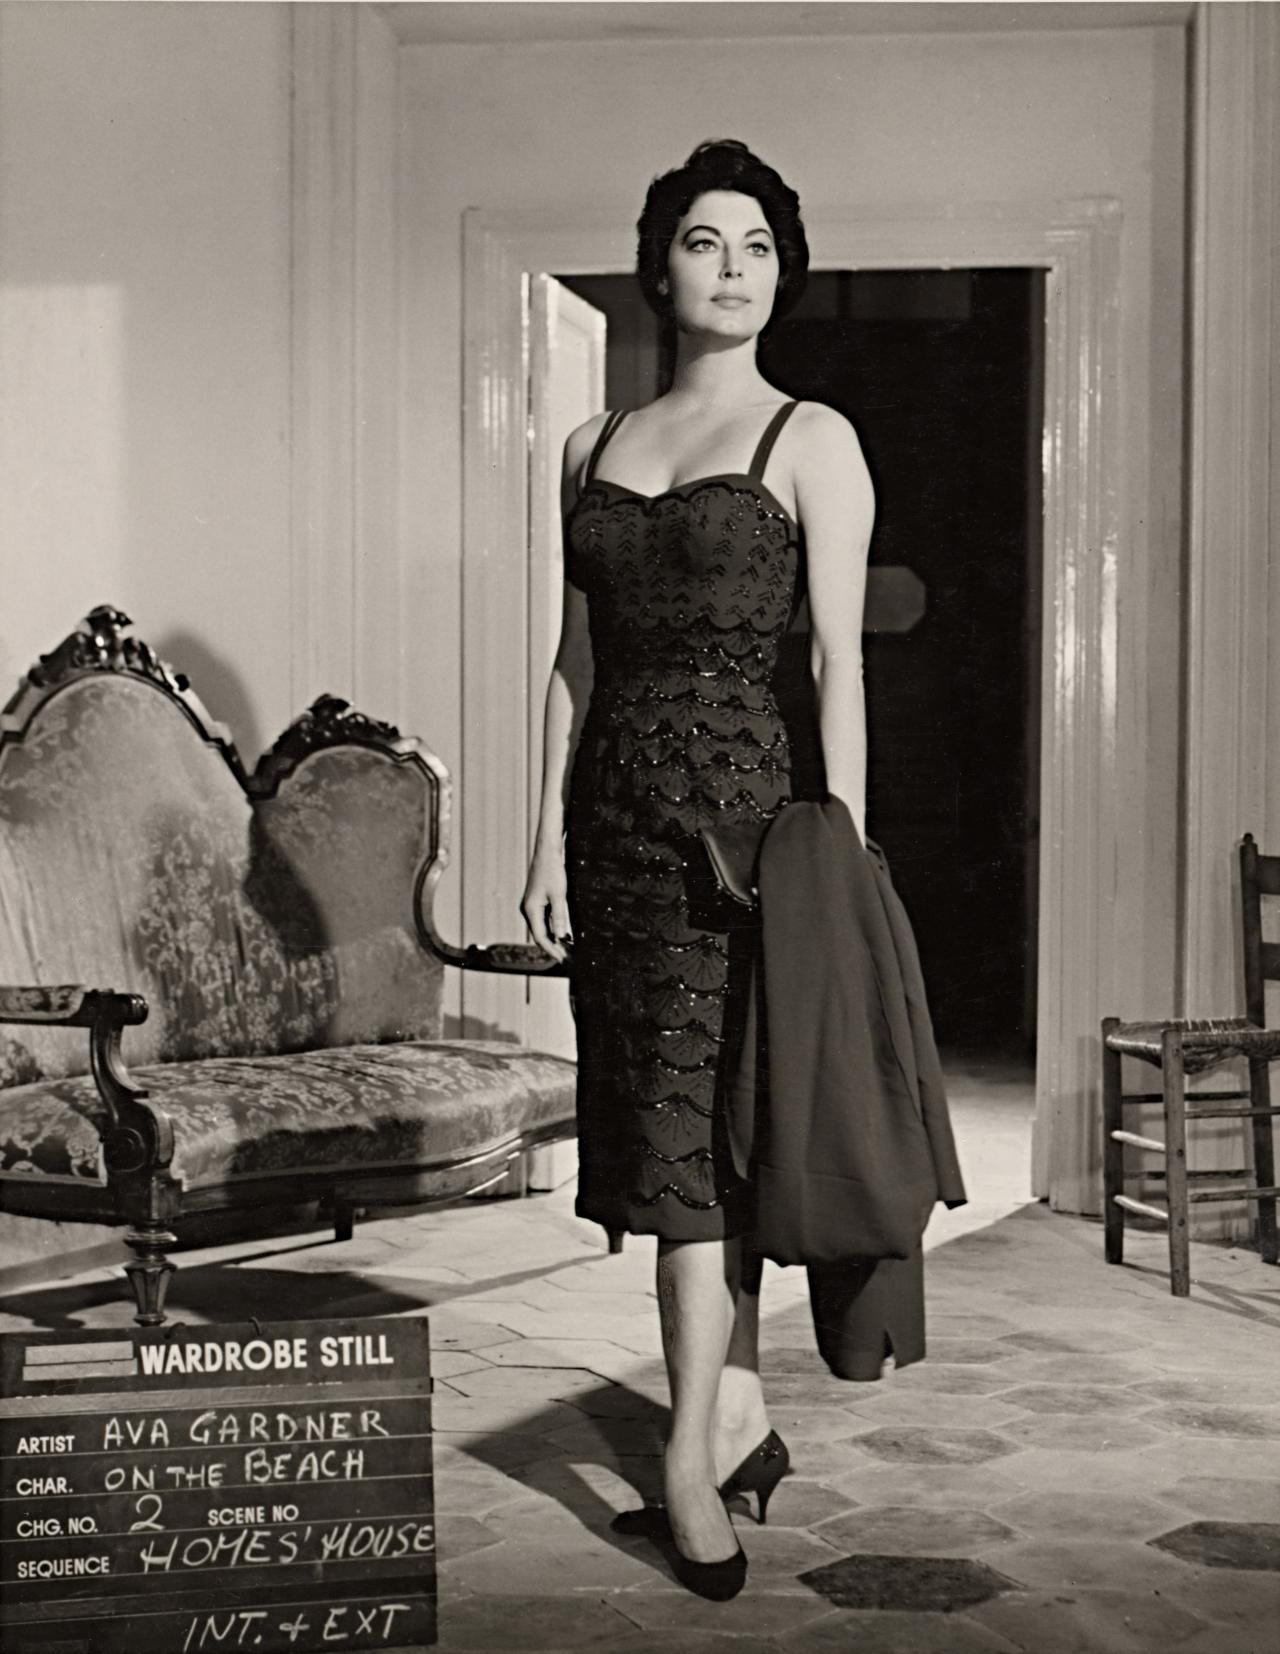 No title (Ava Gardner in wardrobe still for On the beach: Homes' house)